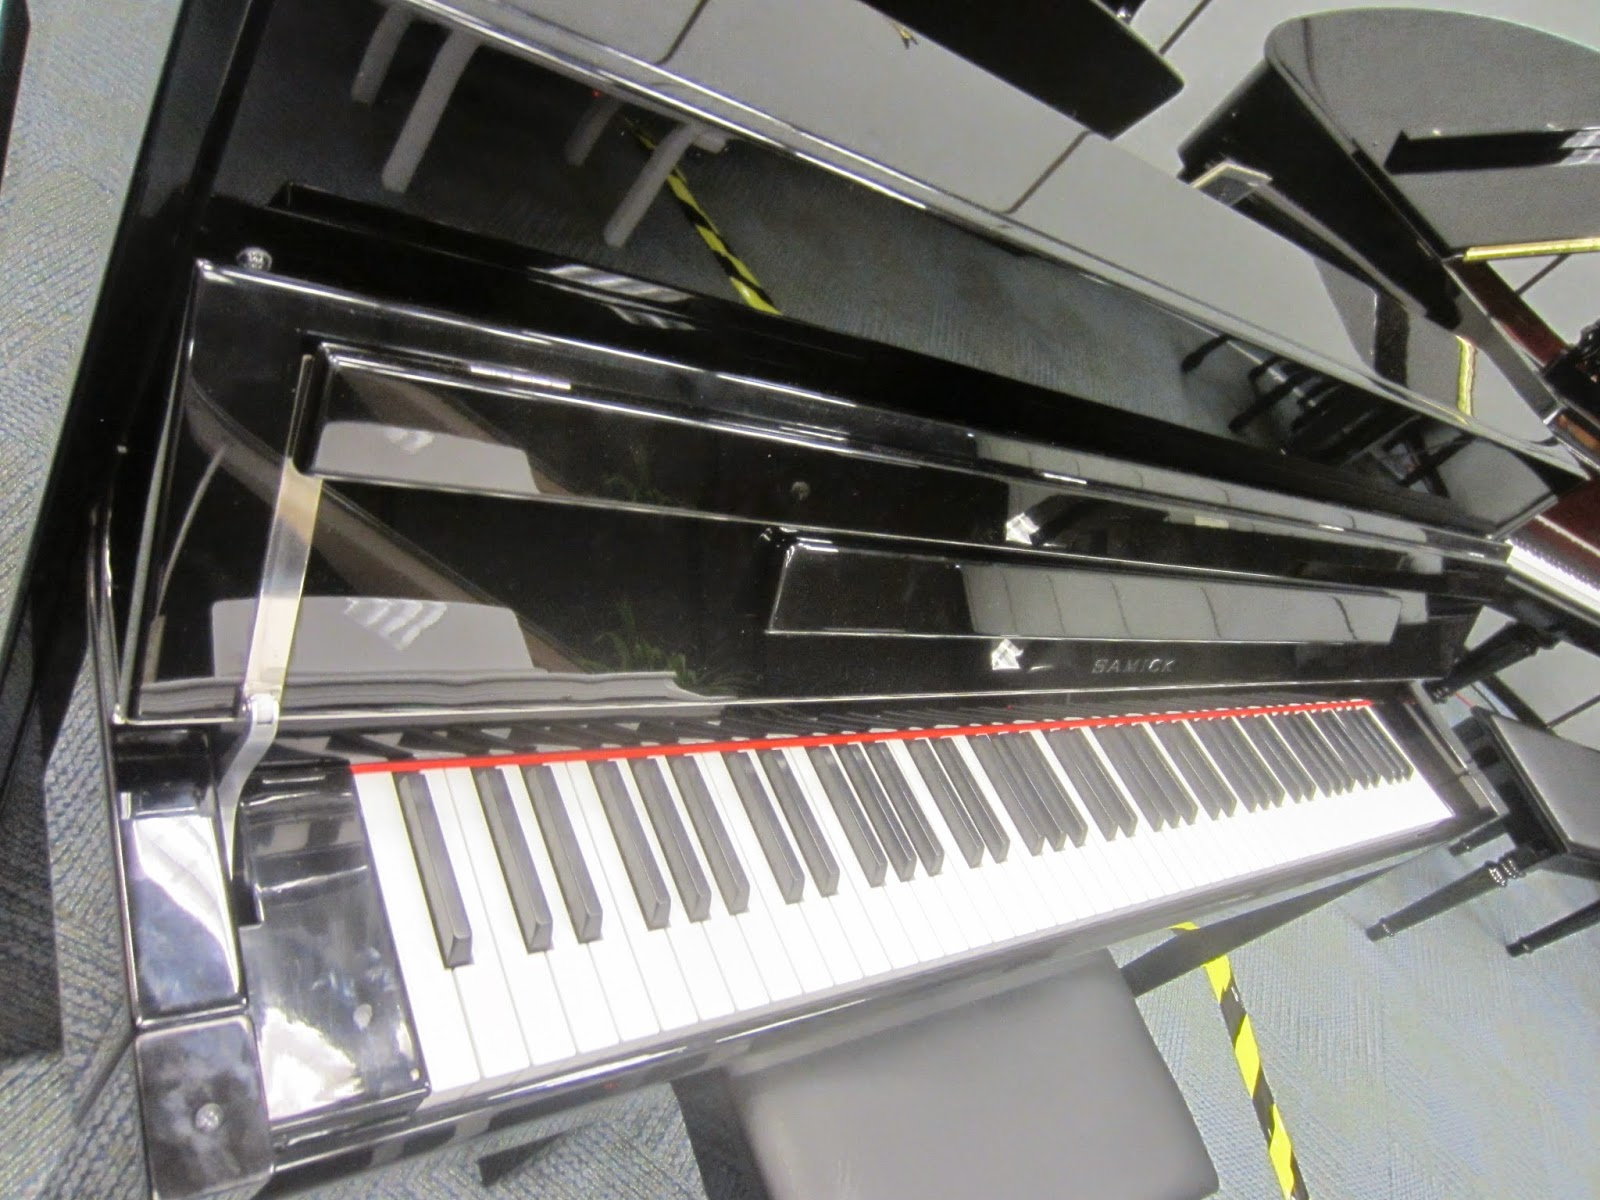 Samick NEO hybrid digital upright piano